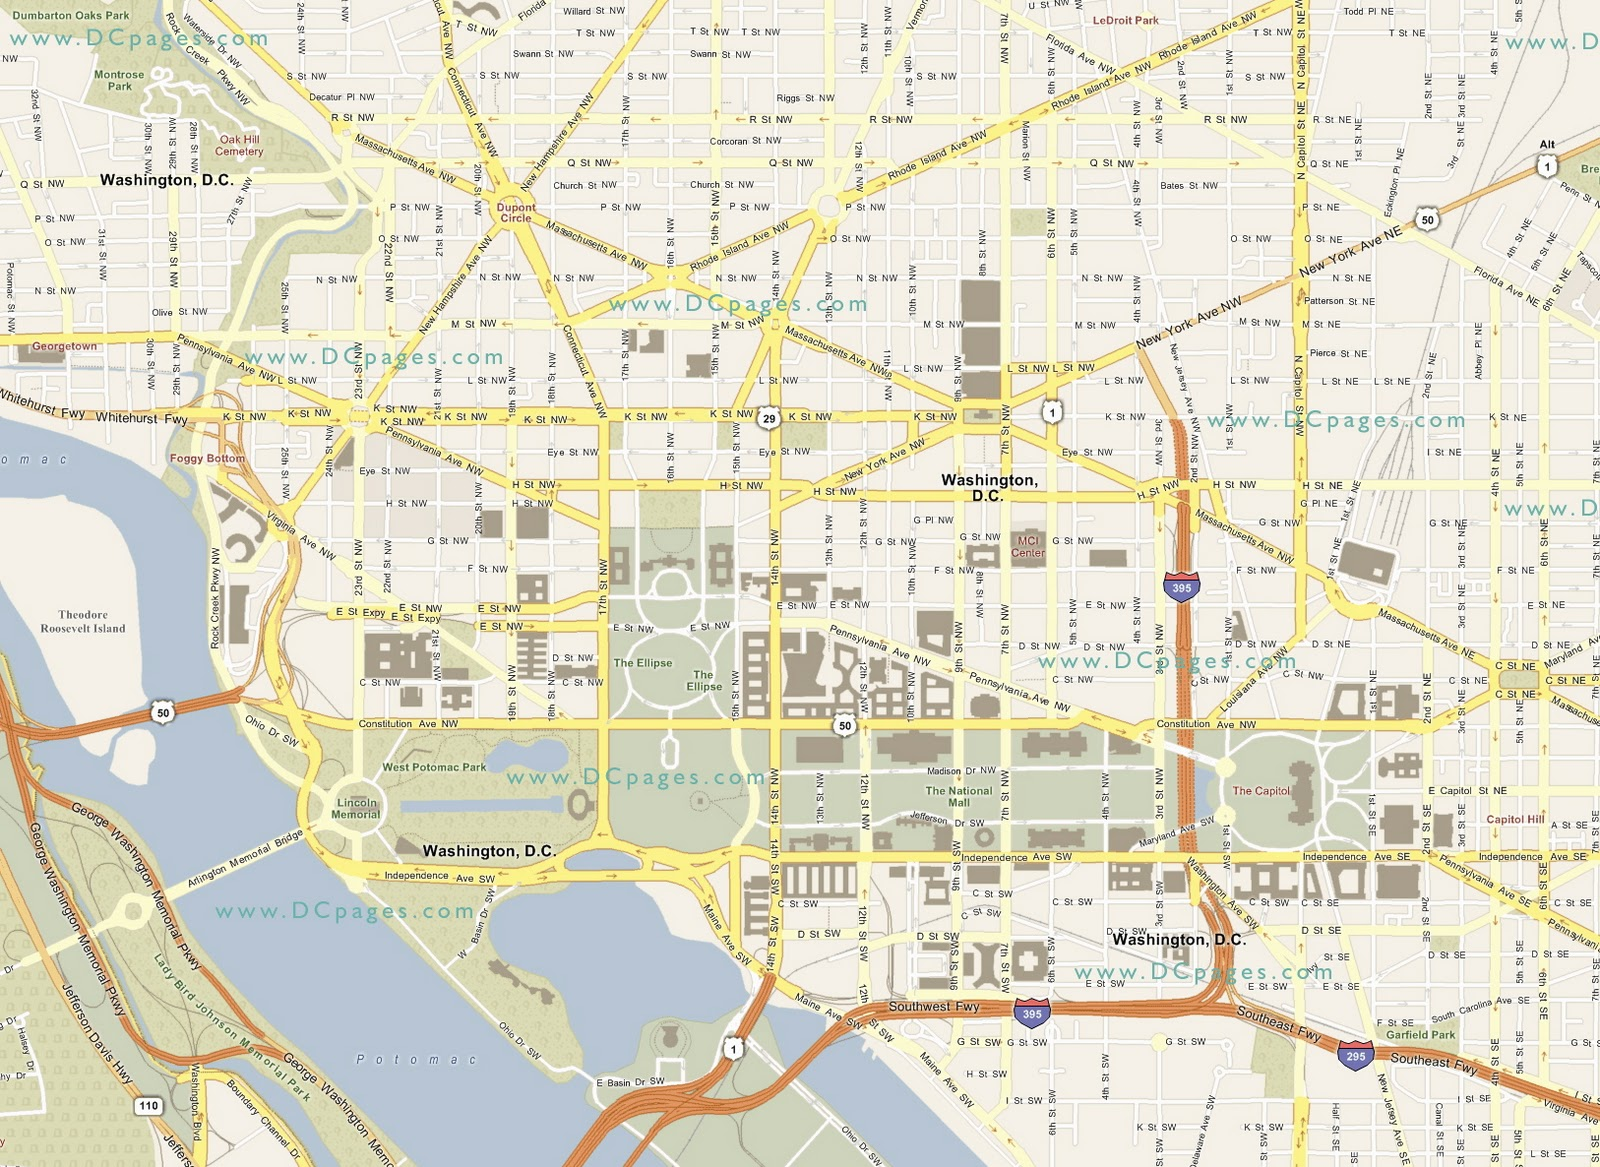 Washington DC Map National Mall Maps NPMapscom Just Free Maps - Washington dc capitol map